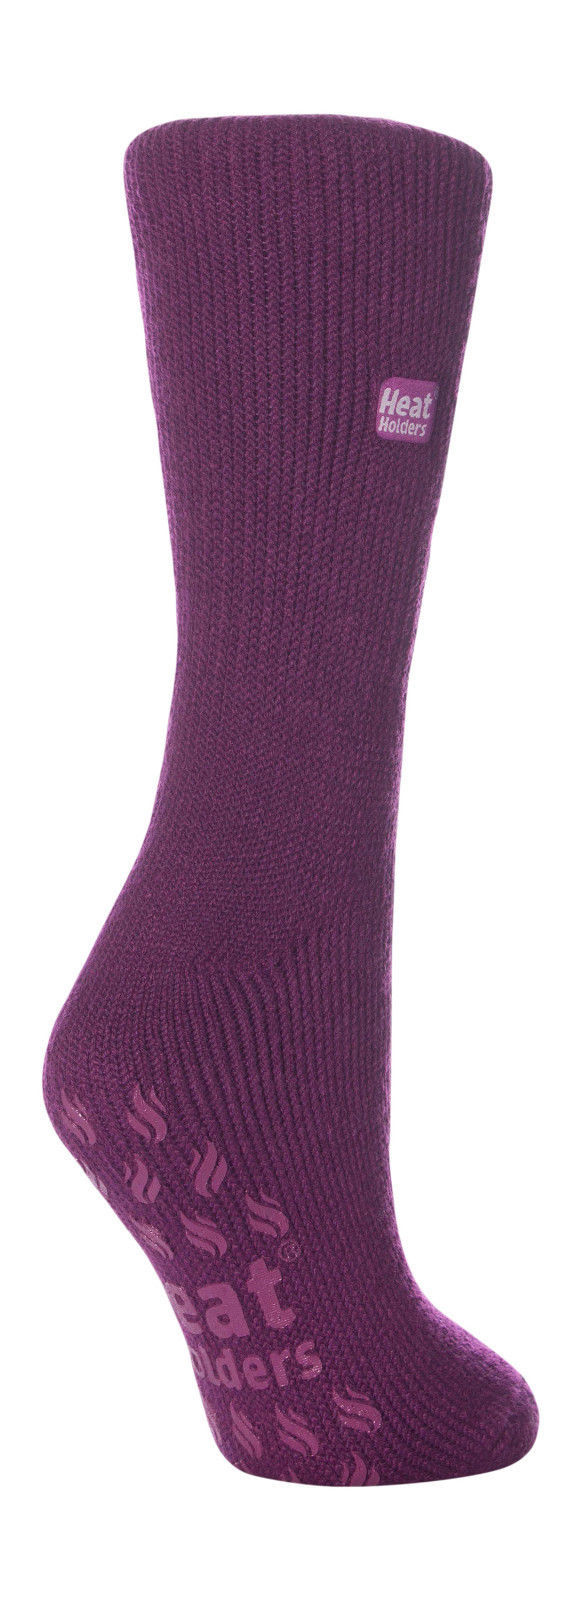 Ladies Genuine Heat Holders Slipper Gripper Non slip Socks Lavender 4-8 uk